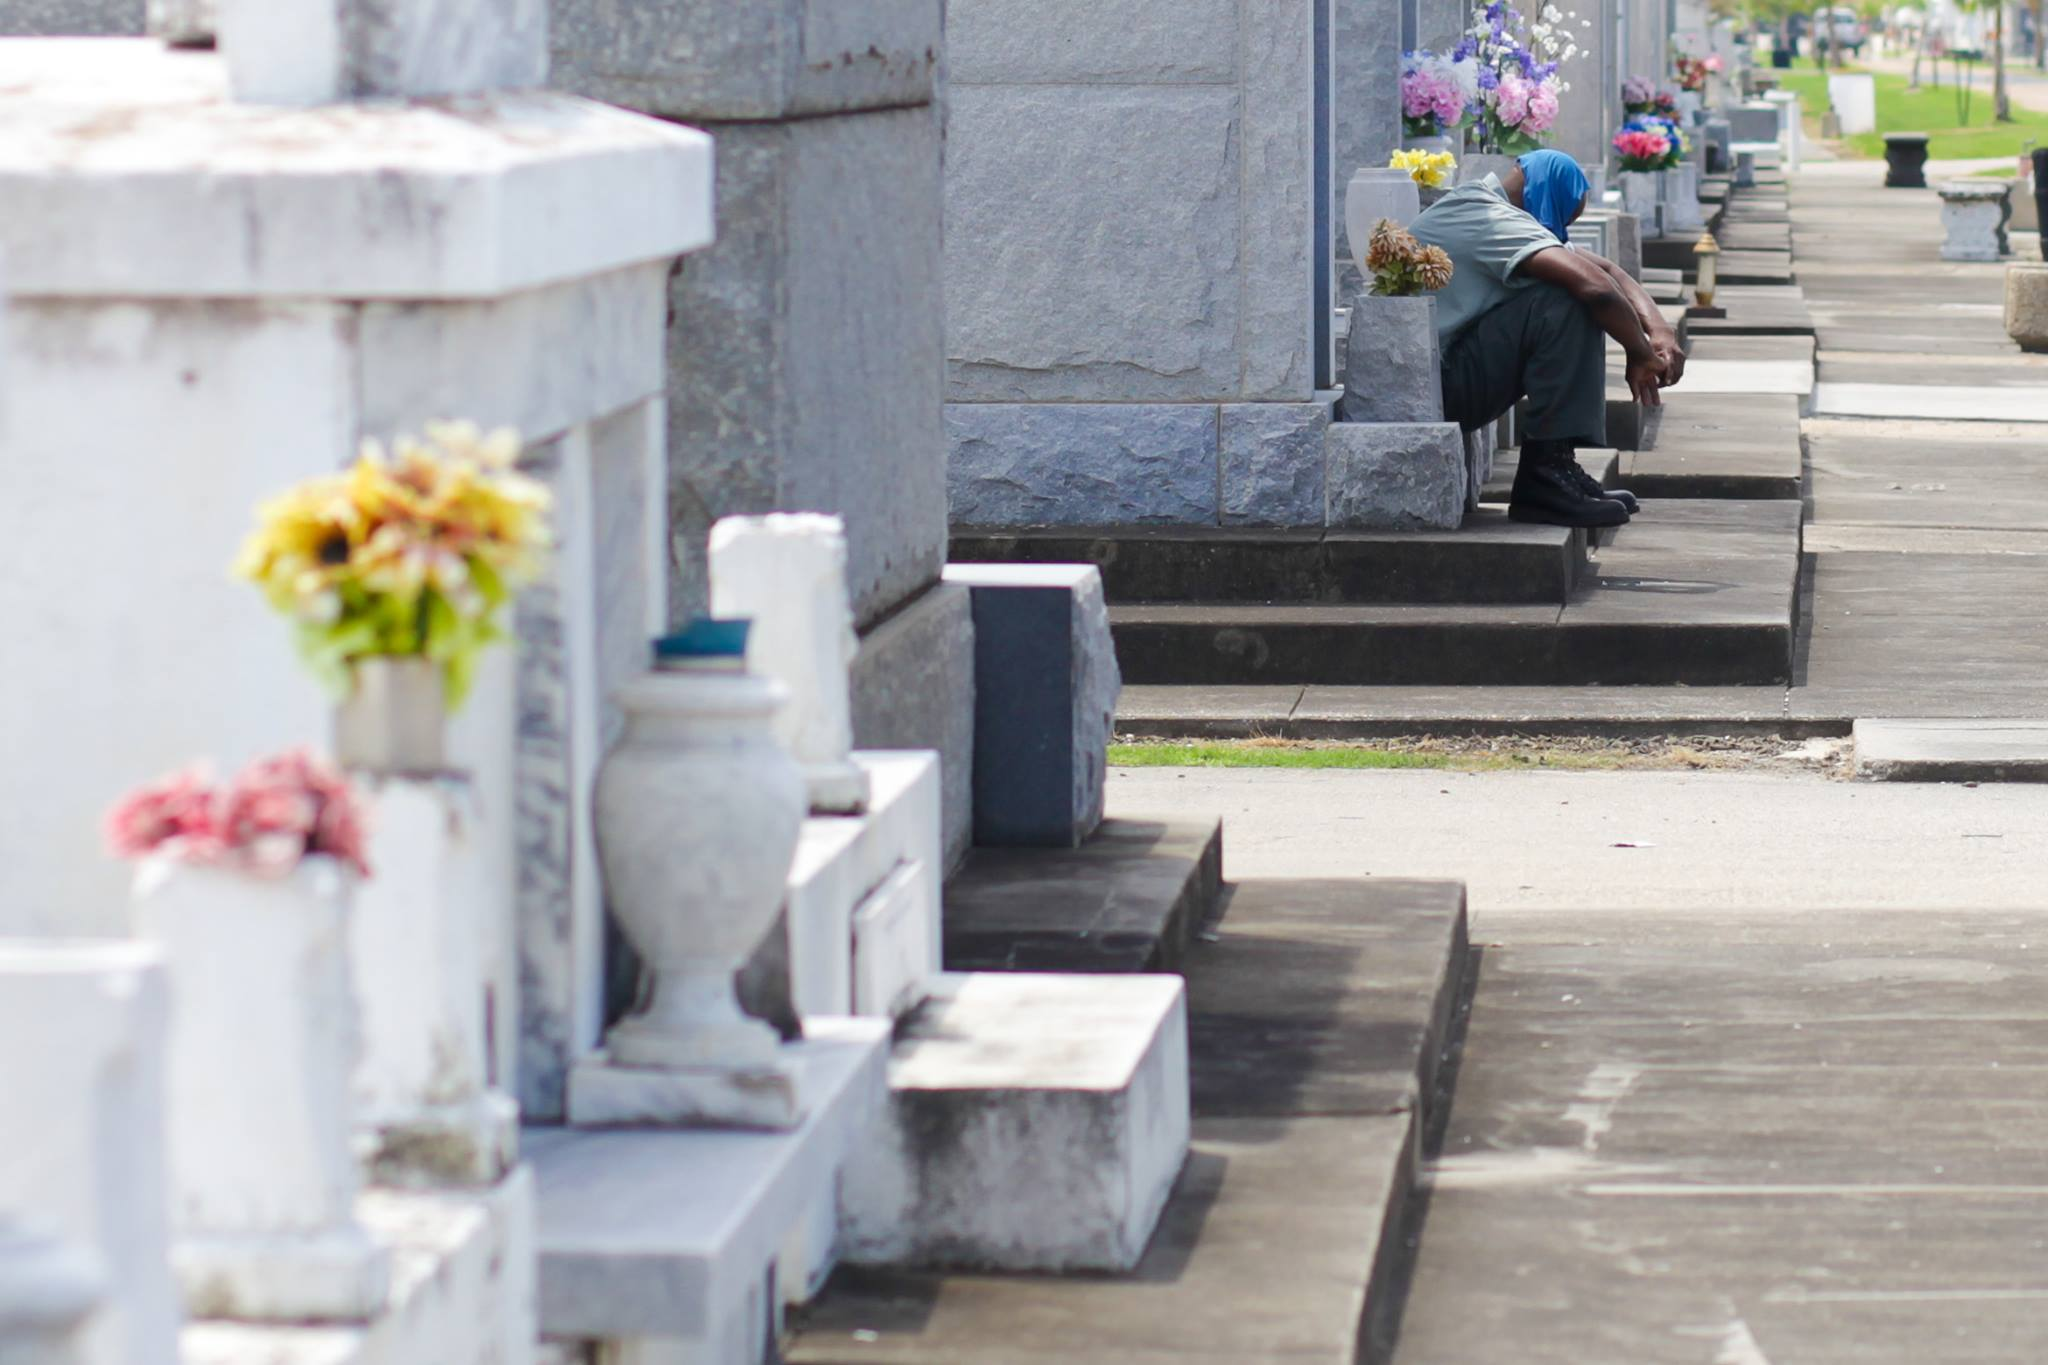 A quiet moment in St Louis Cemetery #3